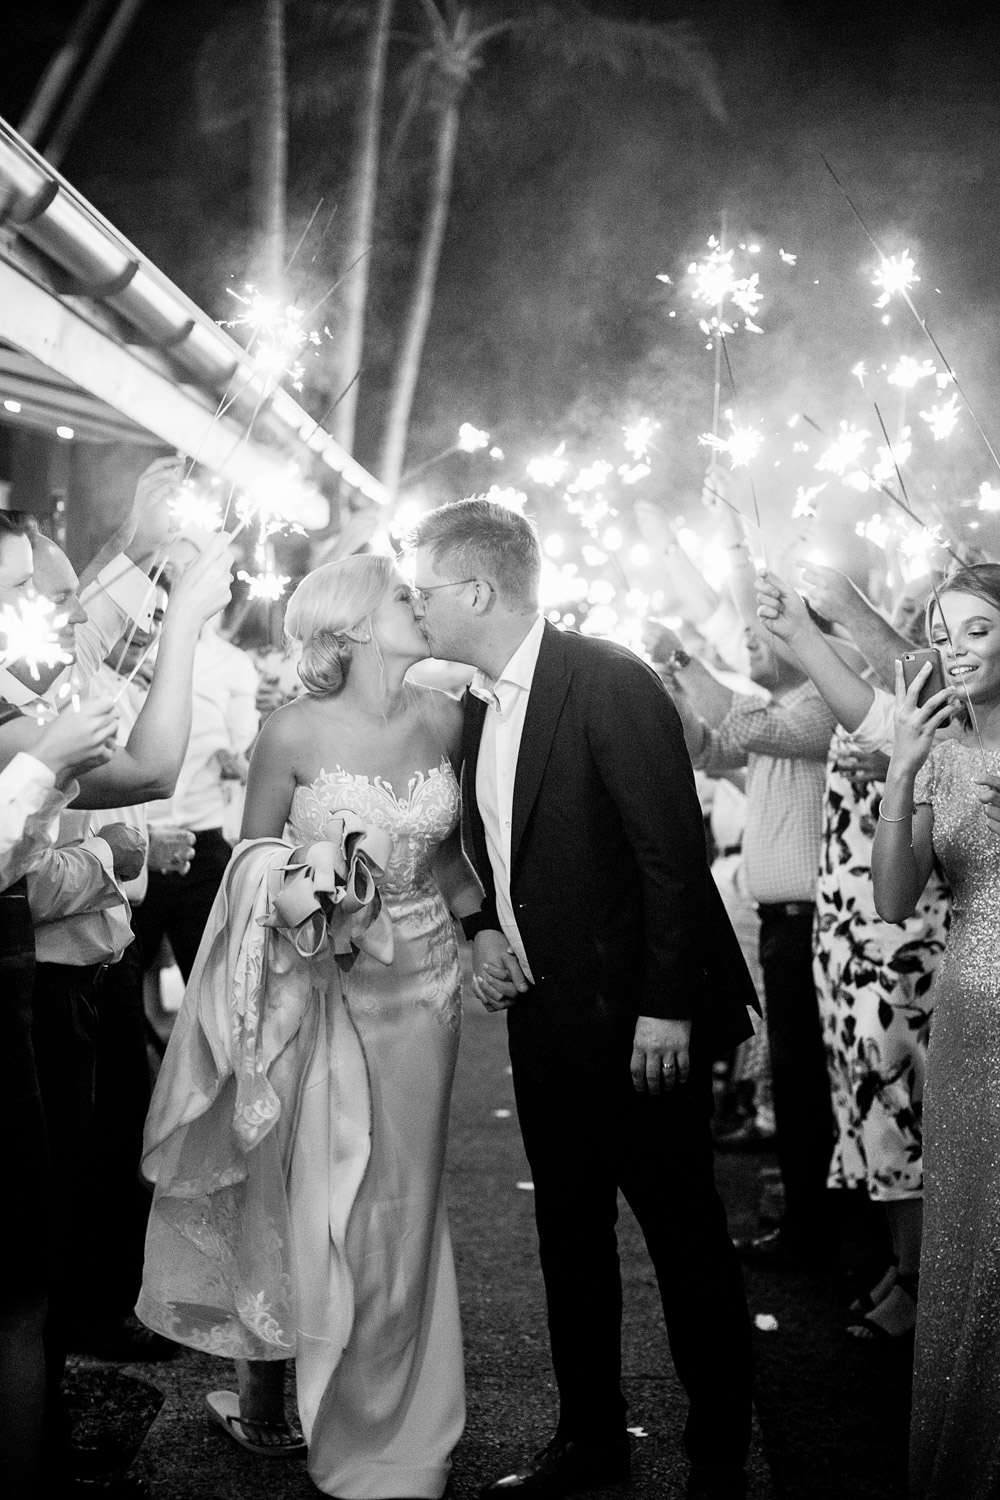 wedding-0165-outrigger-reception-sparklers-kiss-romantic-australia.jpg